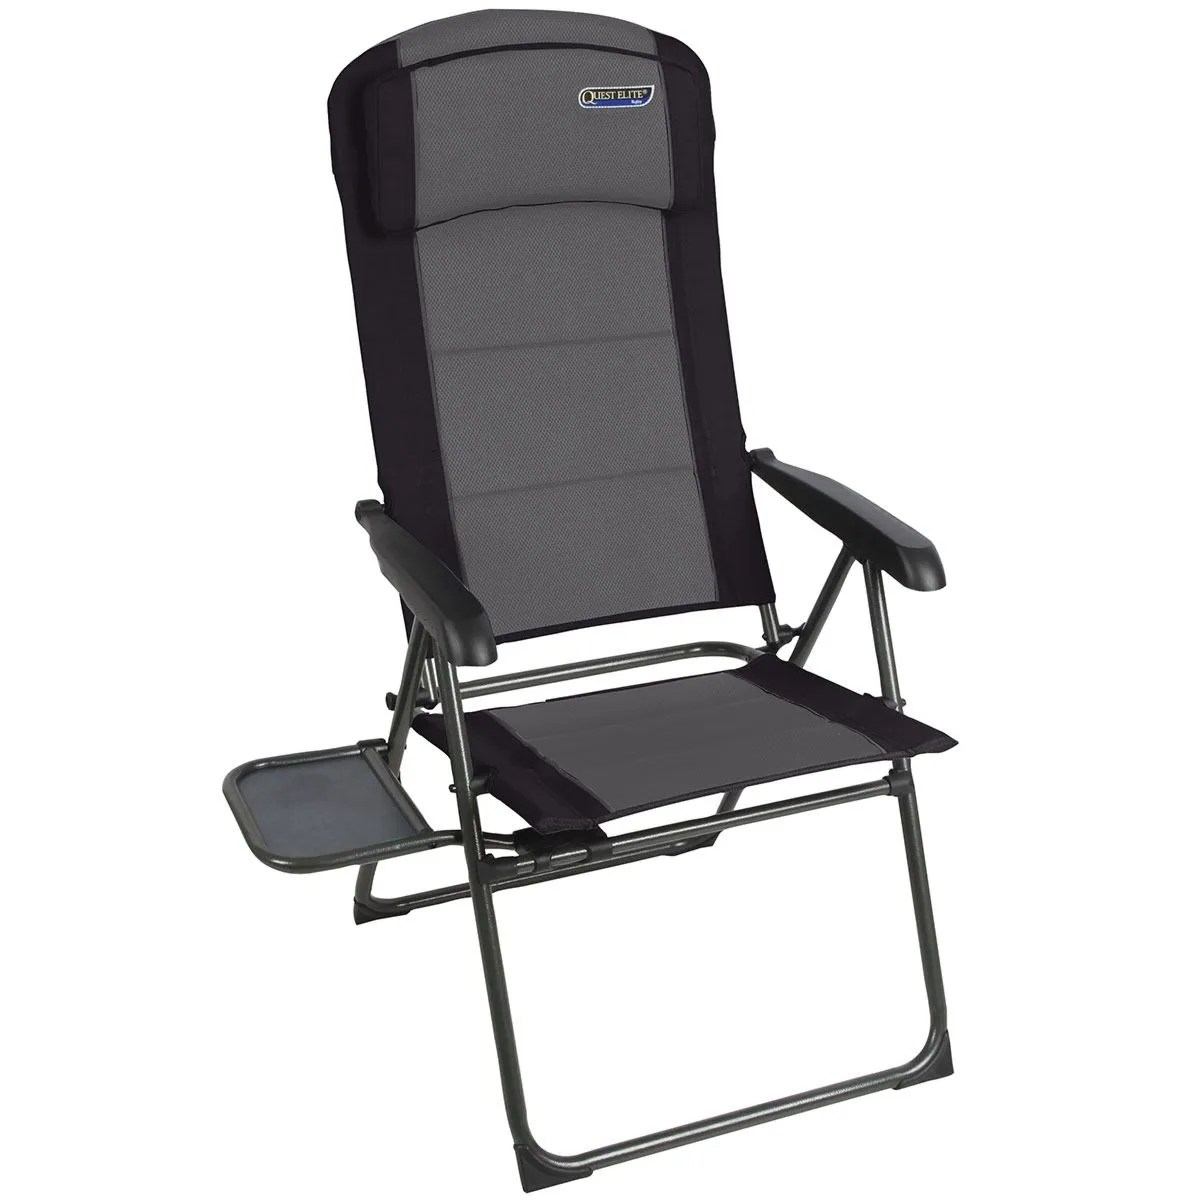 Quest Elite Ragley Padded Reclining Camping Chair With Side Table Black Robert Dyas